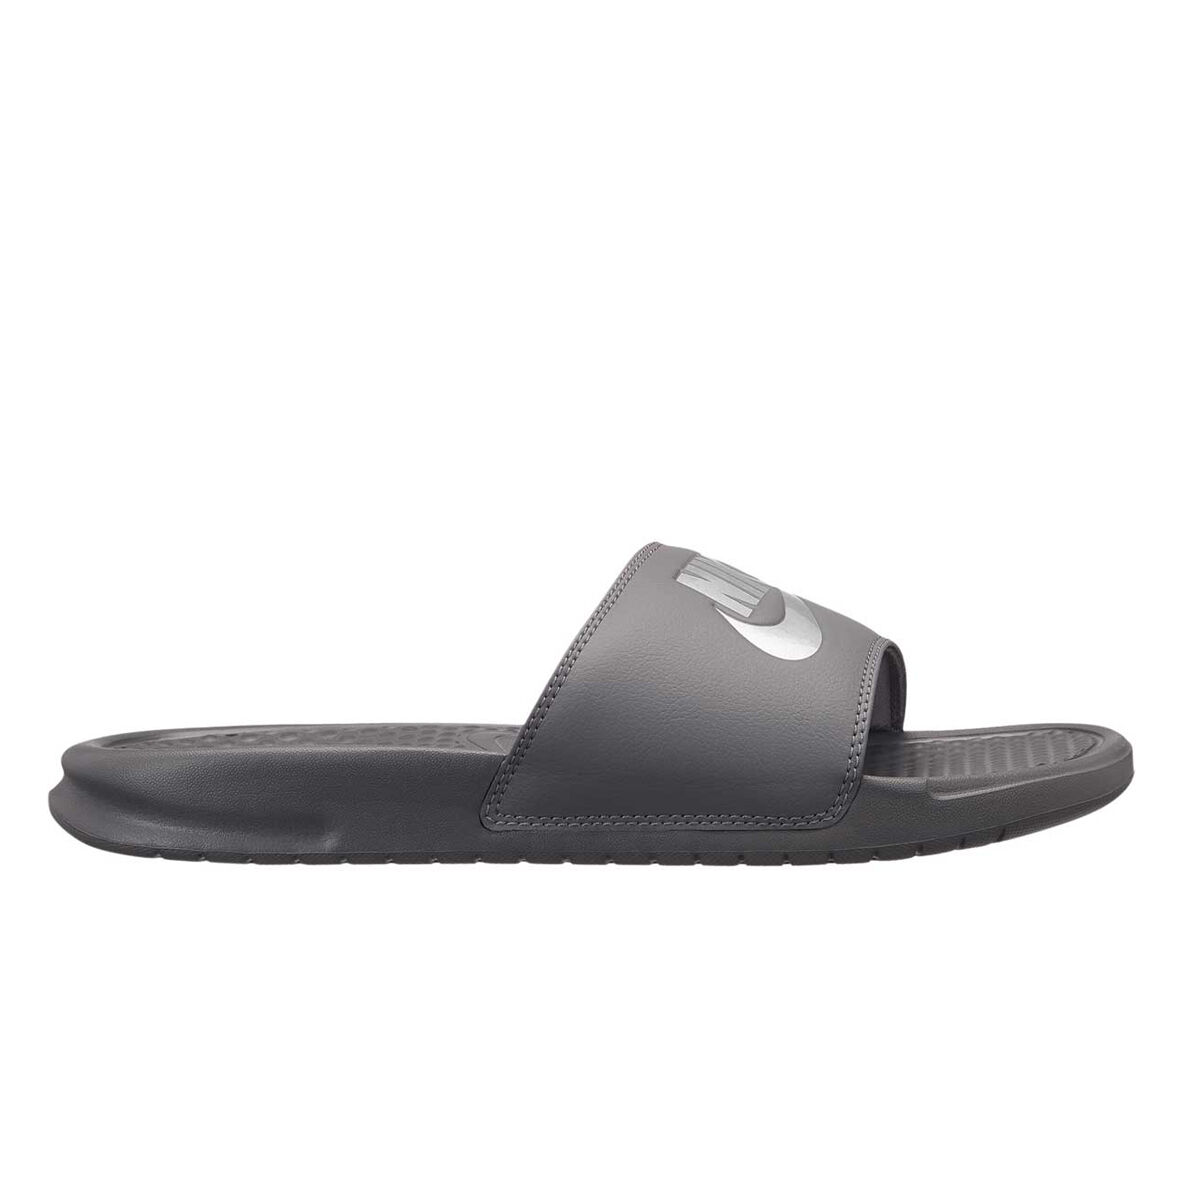 2db9110d9 Nike Benassi Sandals On Sale Gamma Blue Lebron Shoes Kids